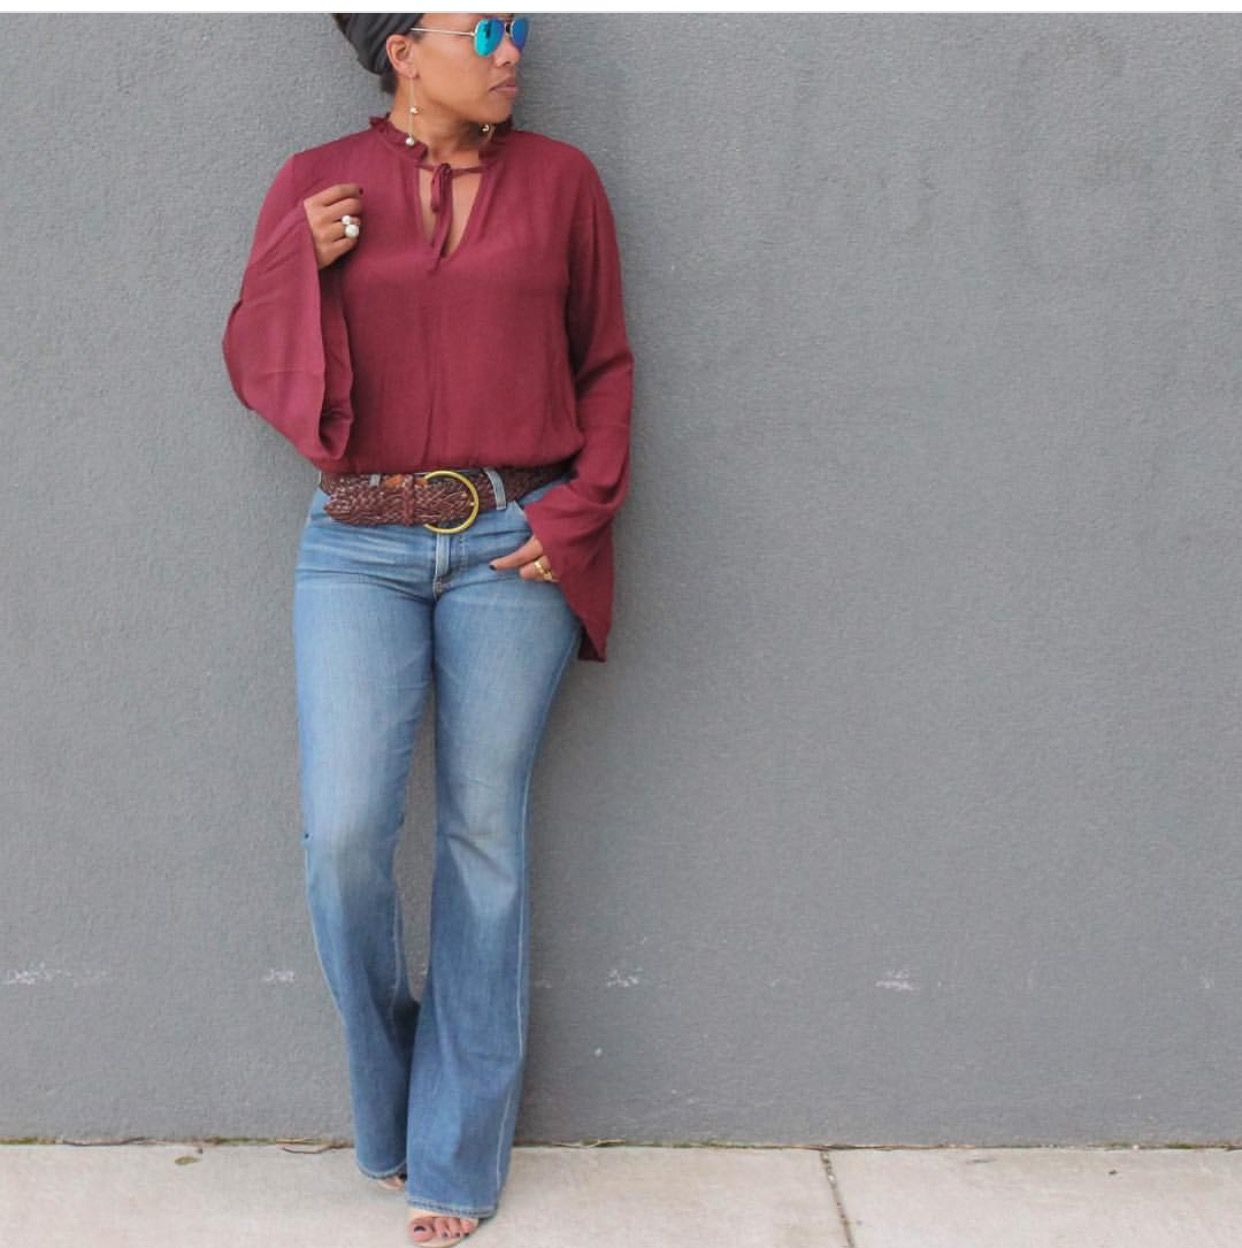 I love the flowy sleeves and style and color is perfect